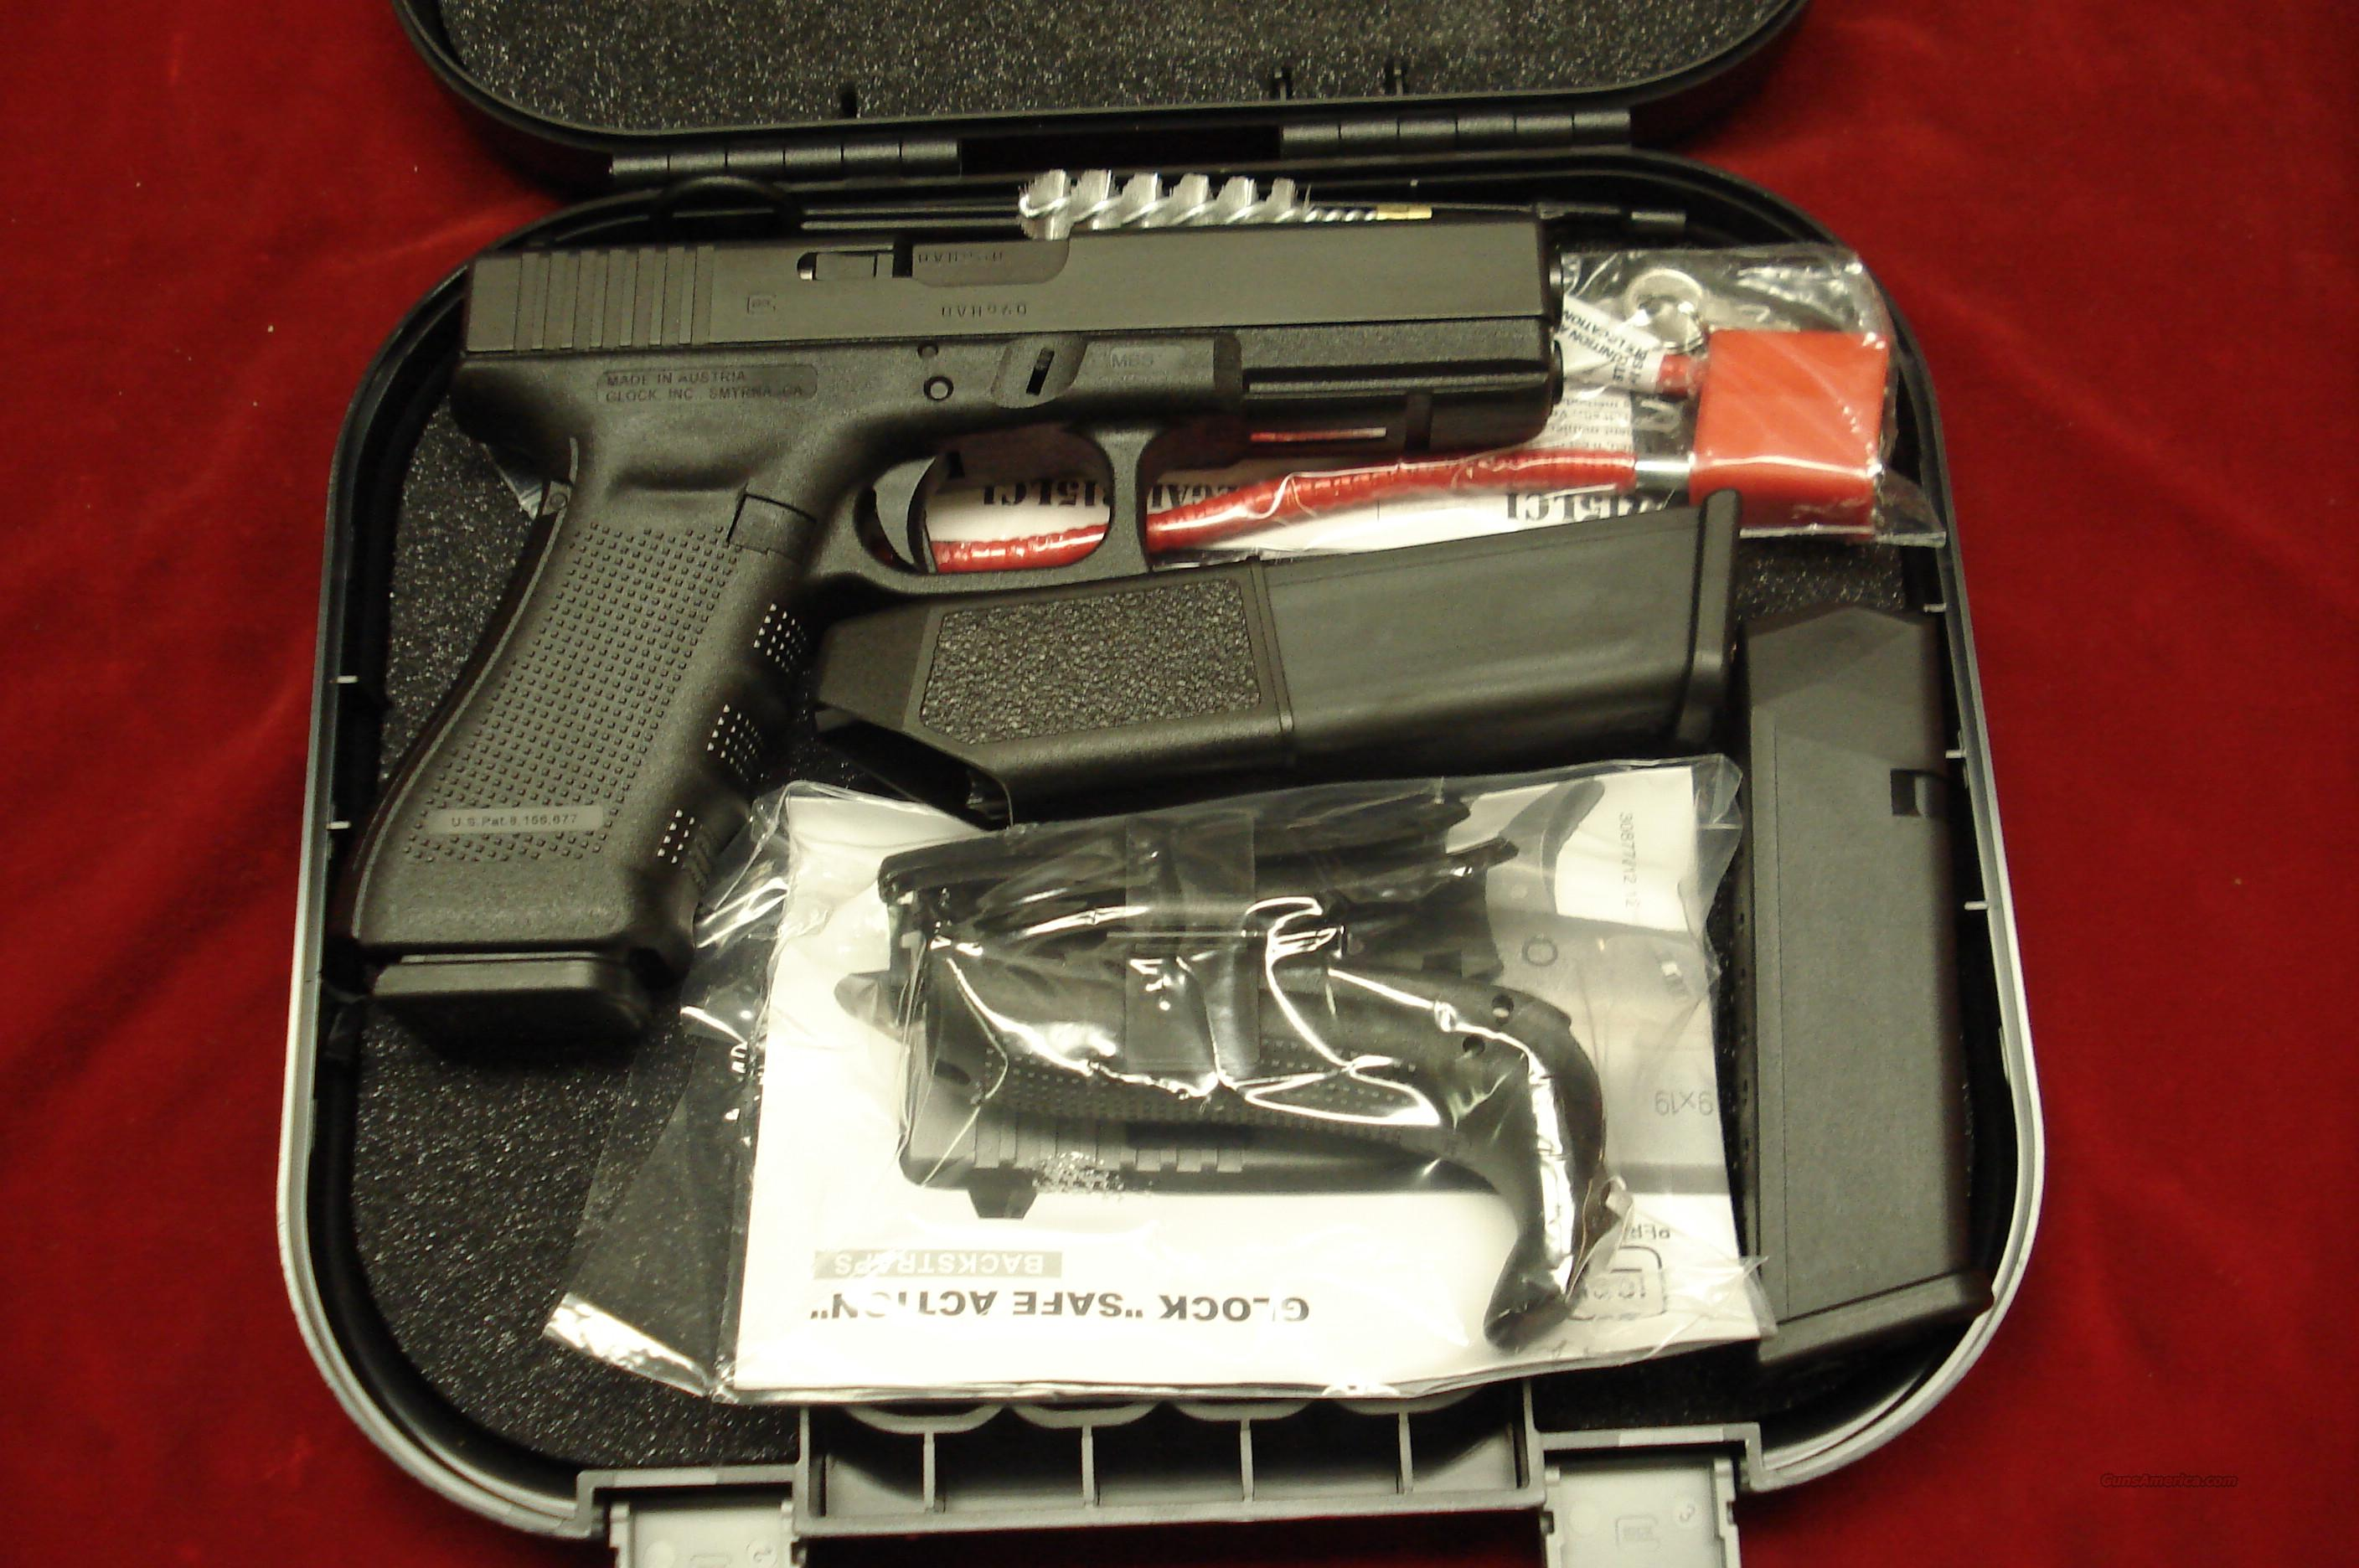 GLOCK MODEL 17 GENERATION 4 9MM WITH 3 SEVENTEEN ROUND MAGAZINES NEW   Guns > Pistols > Glock Pistols > 17